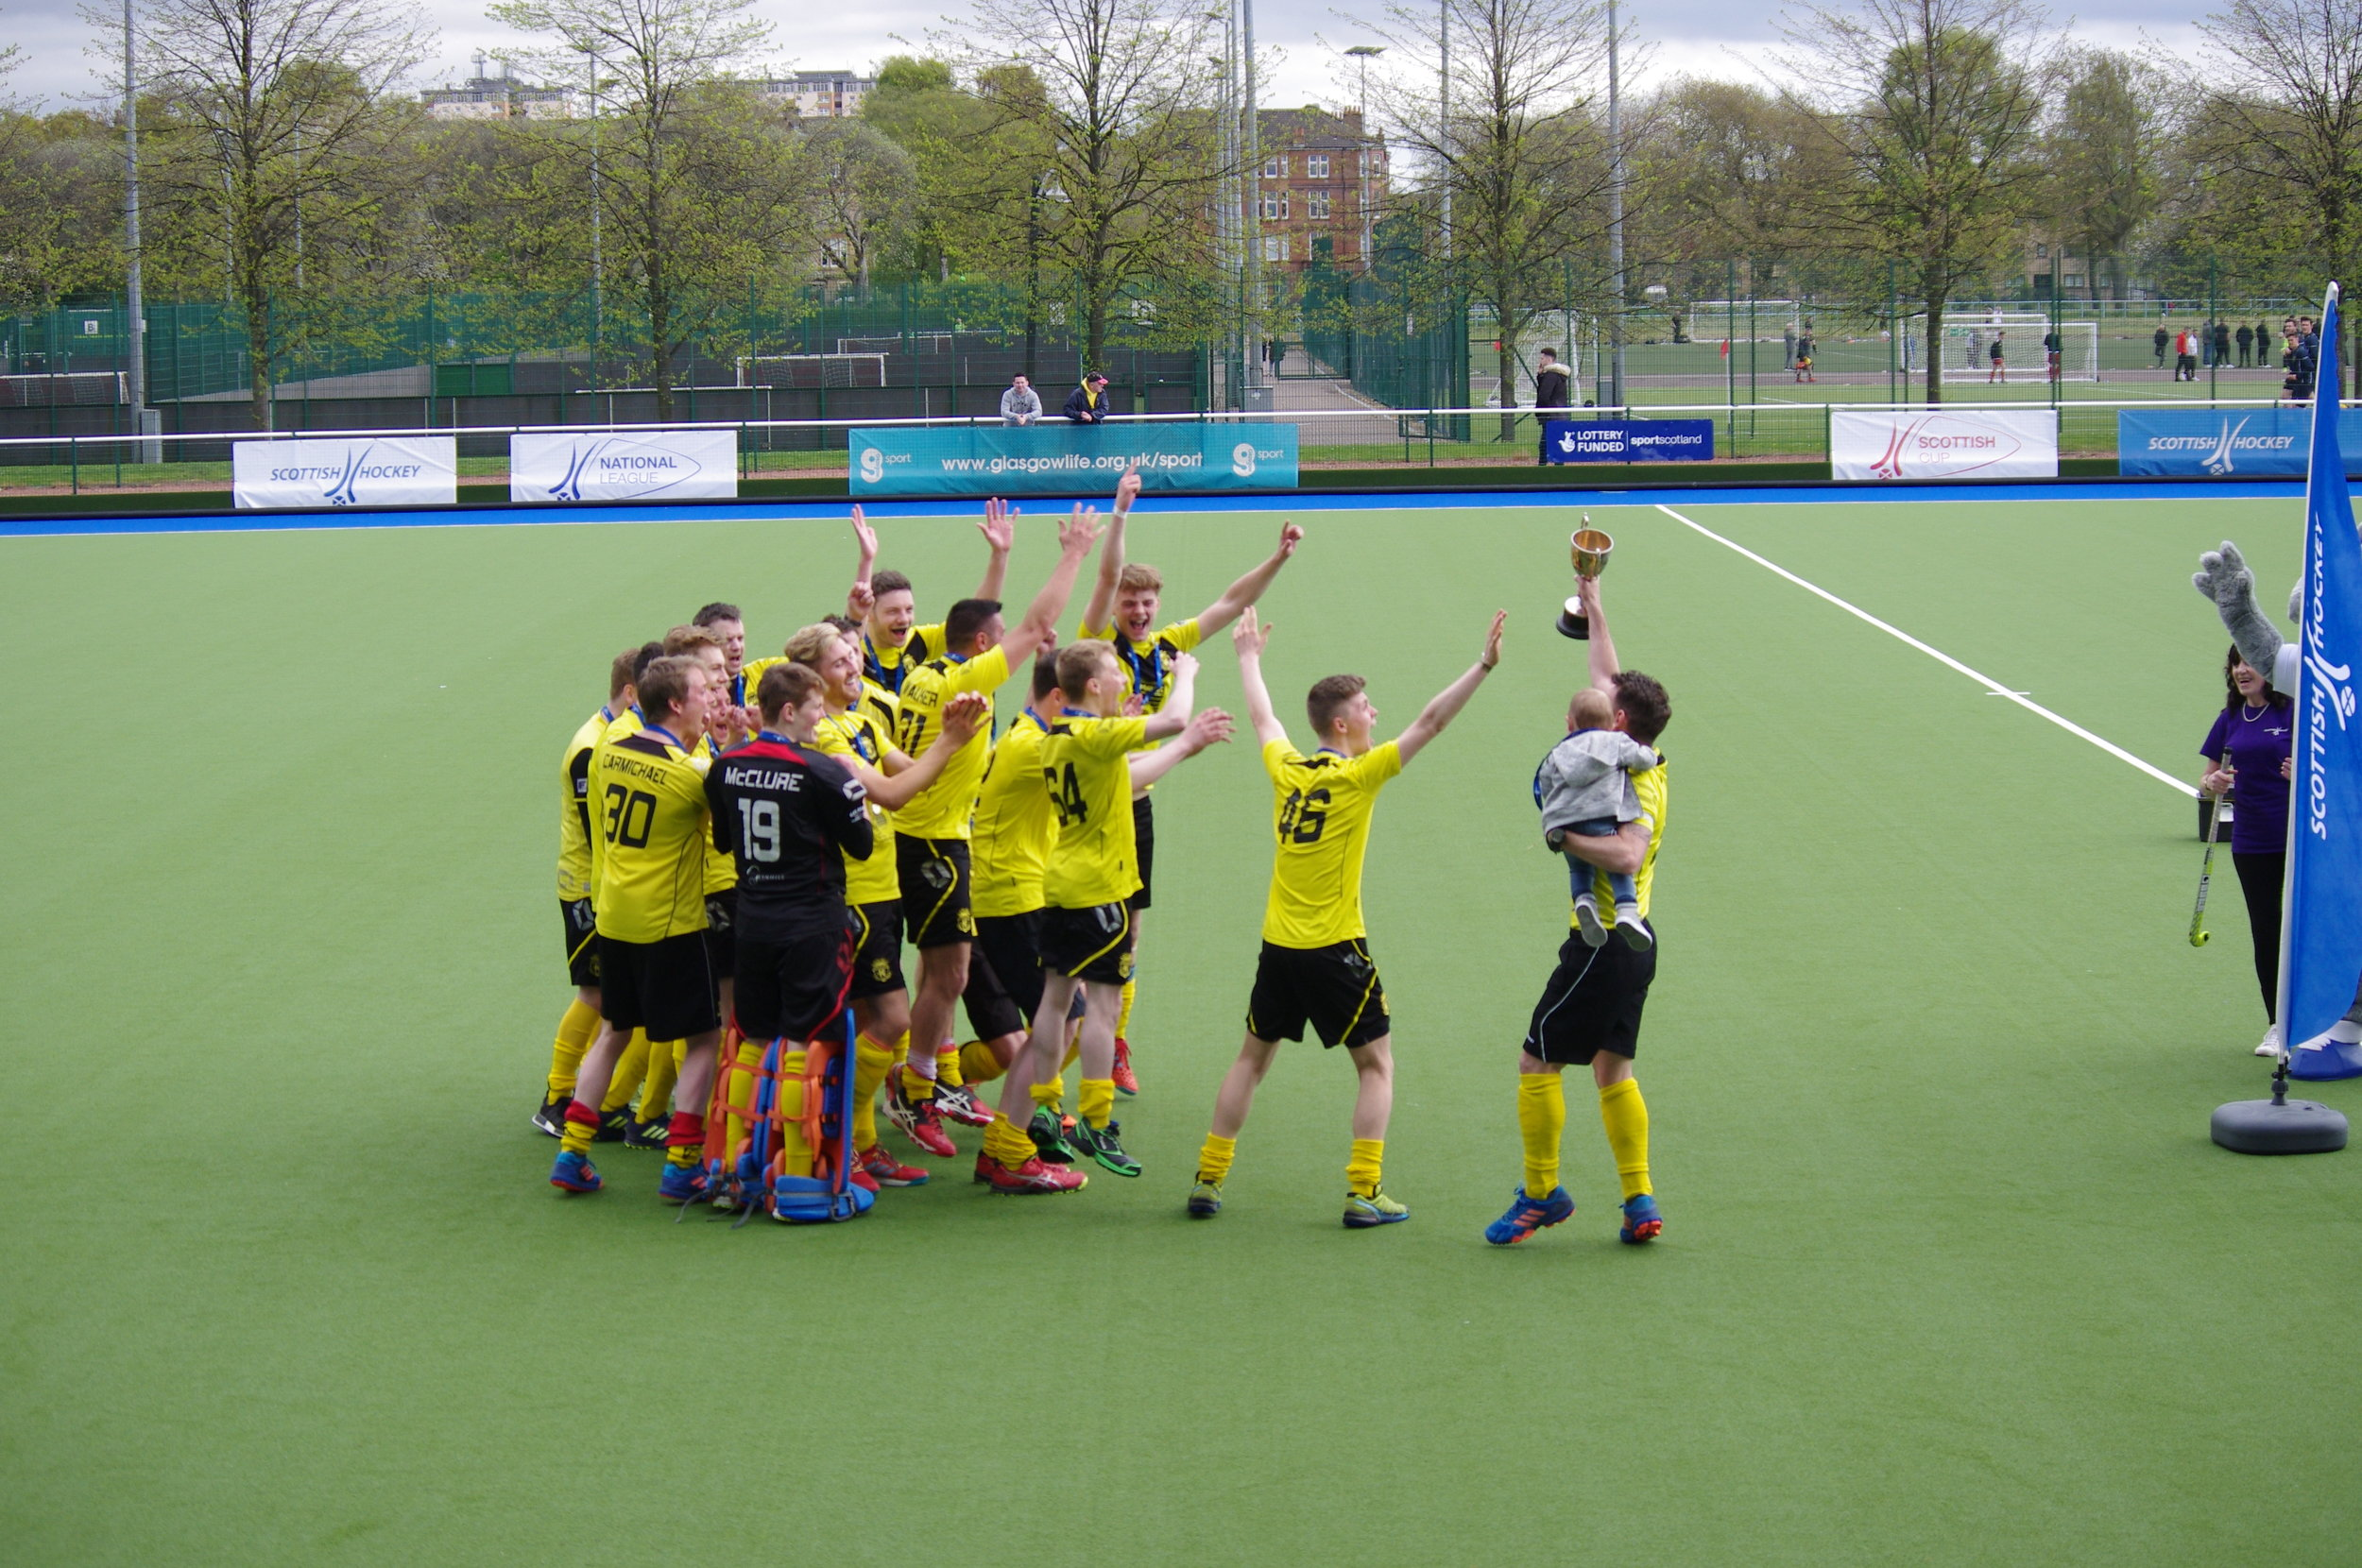 ..takes a team, their coach and positive support.. well done!